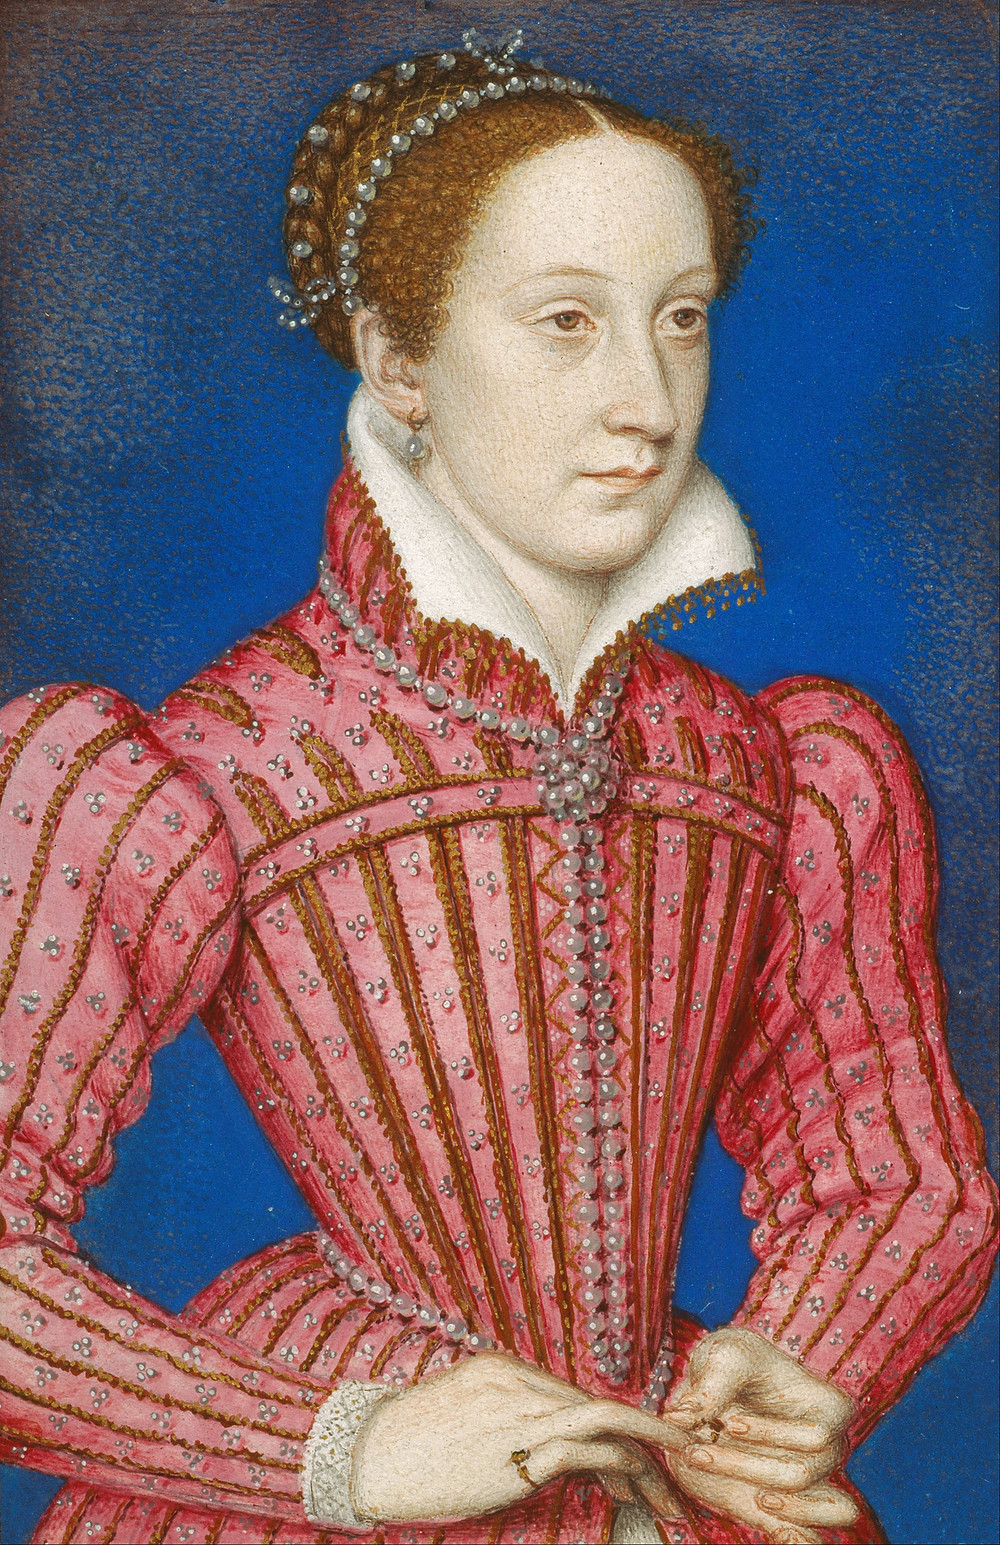 Mary, Queen of Scots. House of Stuart. Royal history